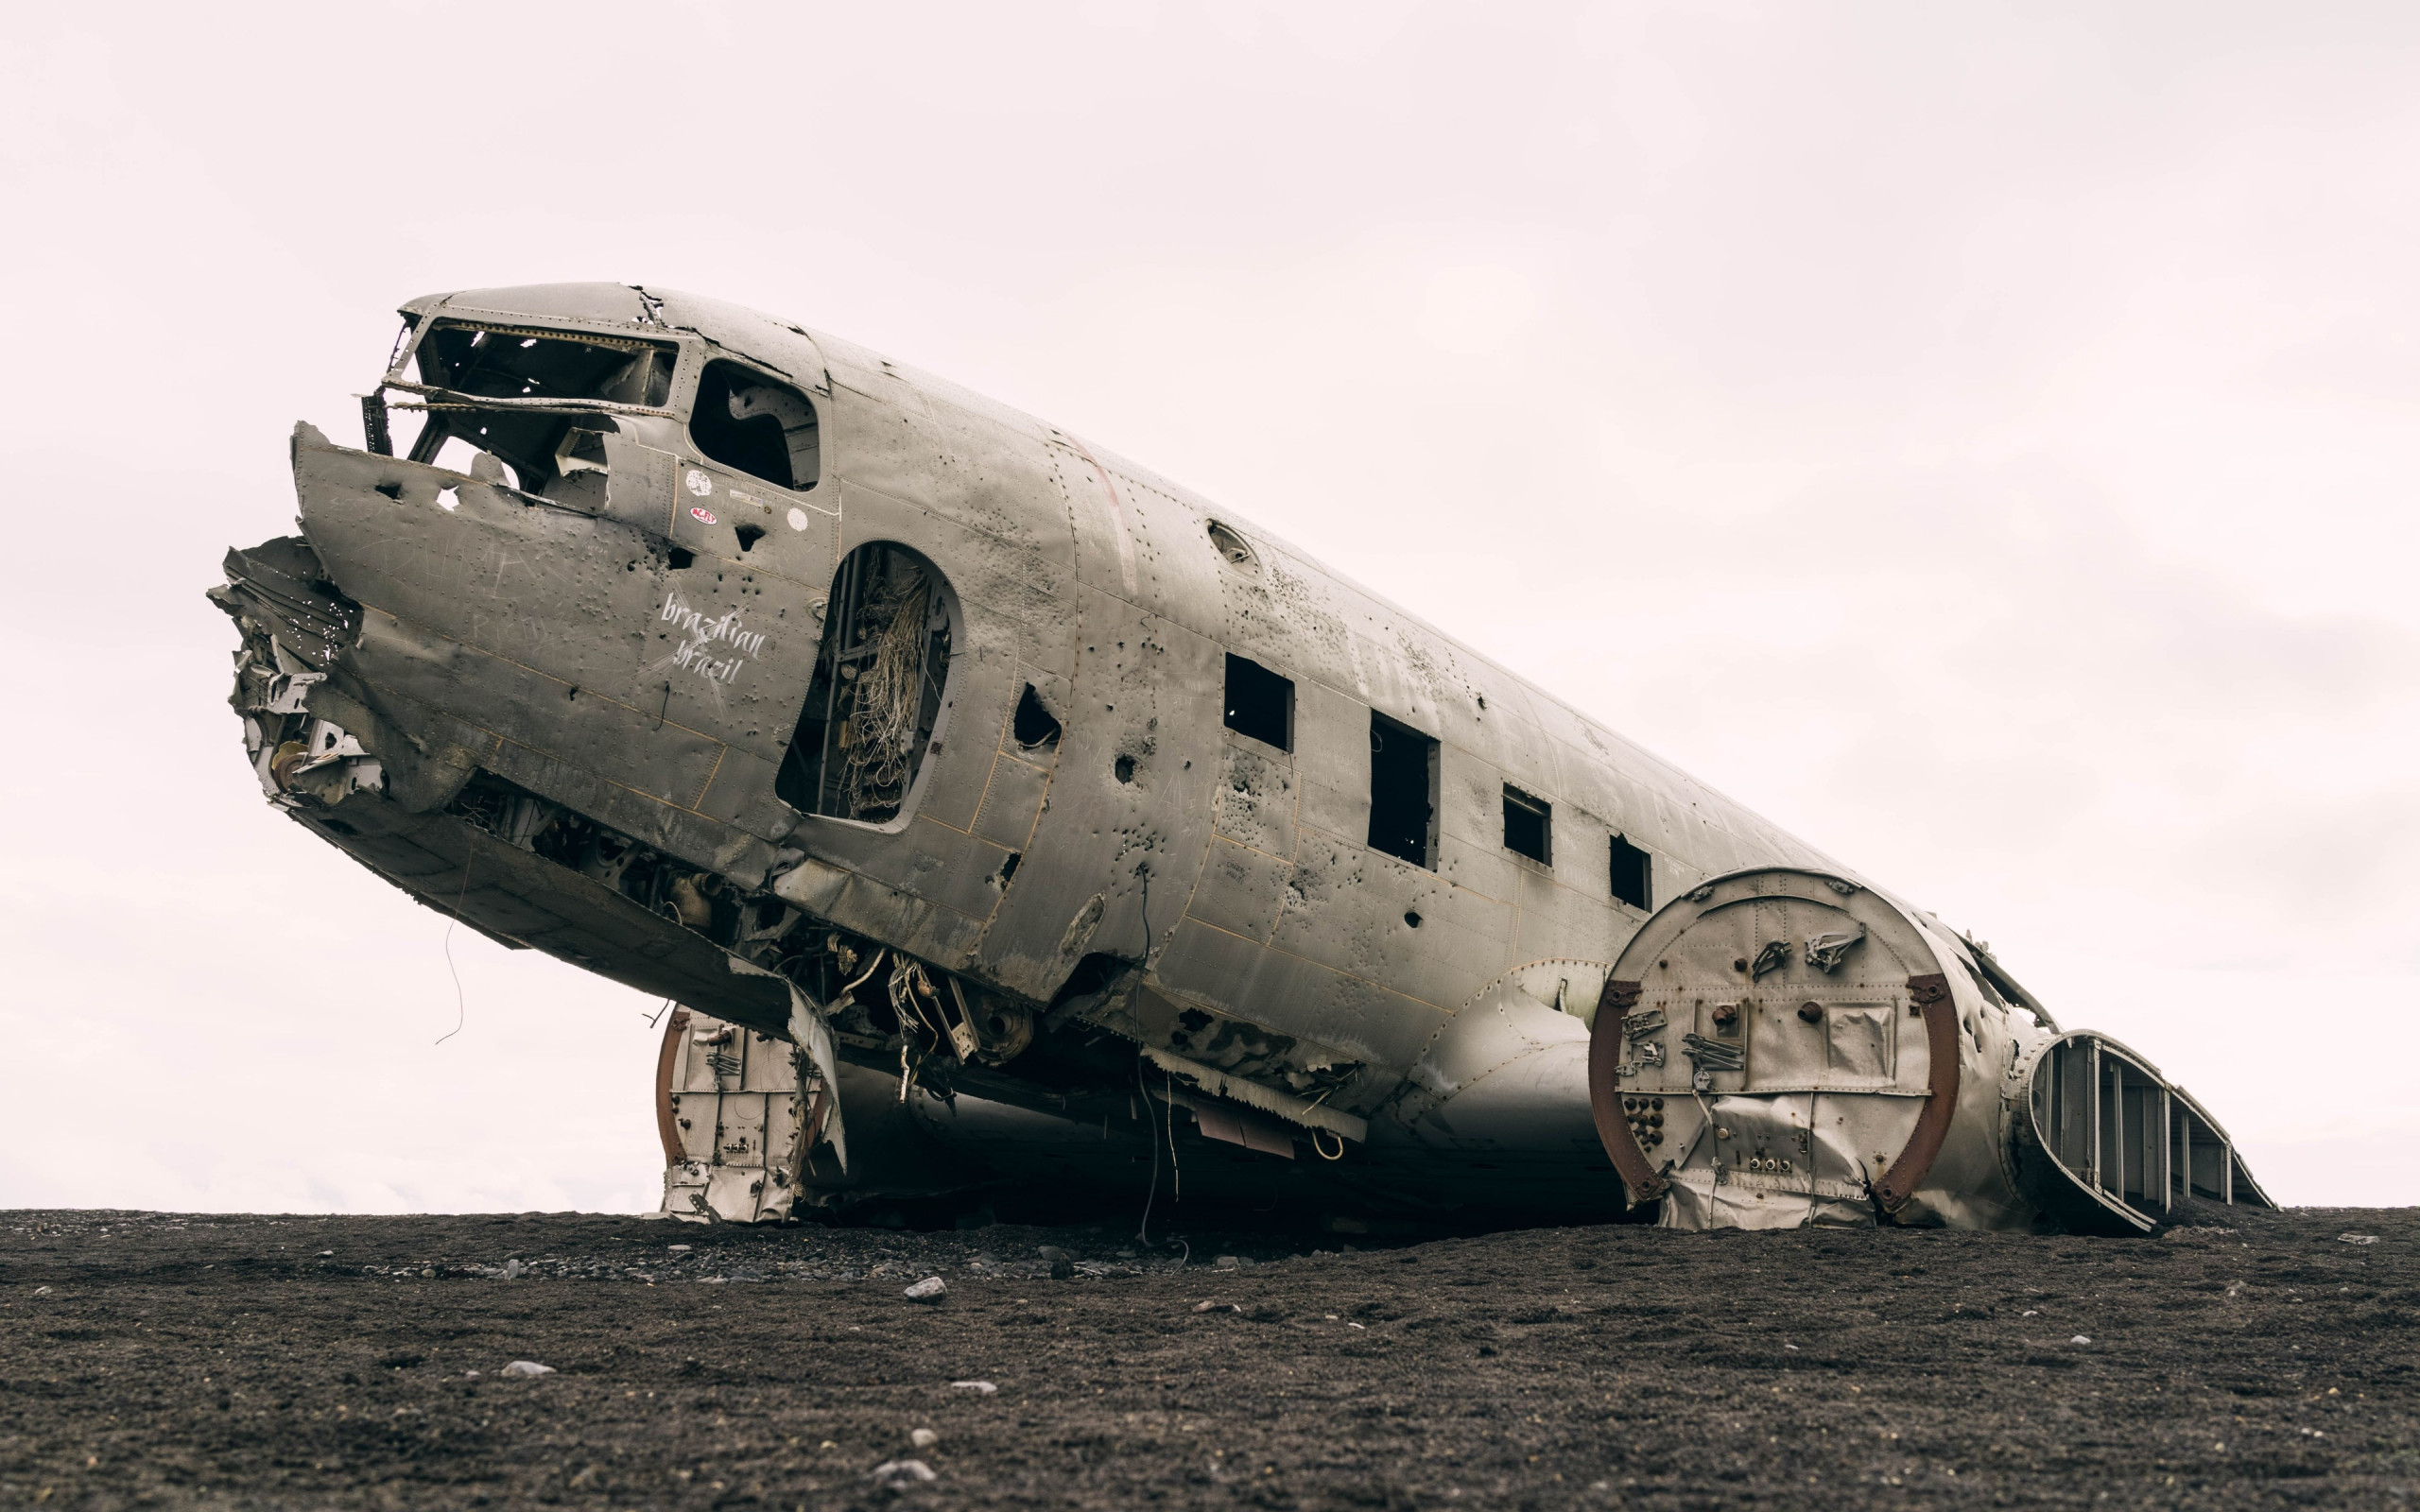 Wrecked airplane | 2560x1600 wallpaper